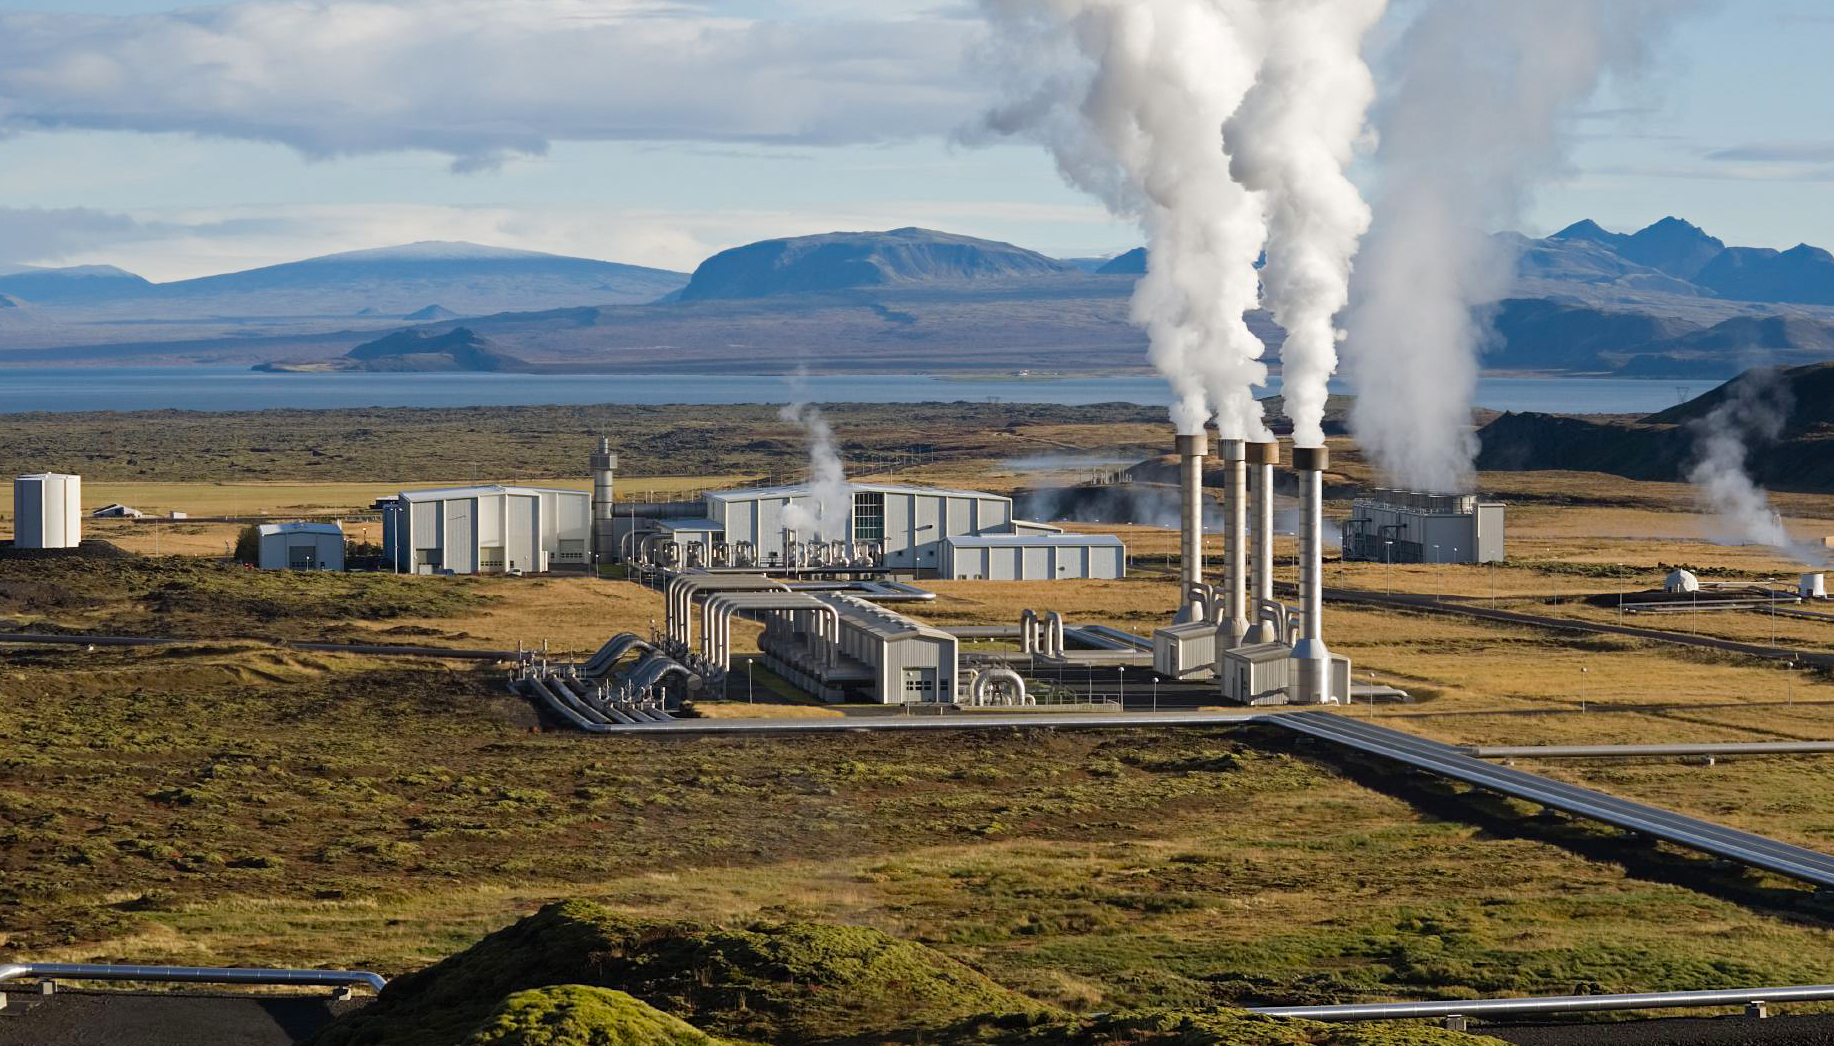 Natural Gas Pros And Cons >> Geothermal Energy Pros and Cons - PEI Magazine